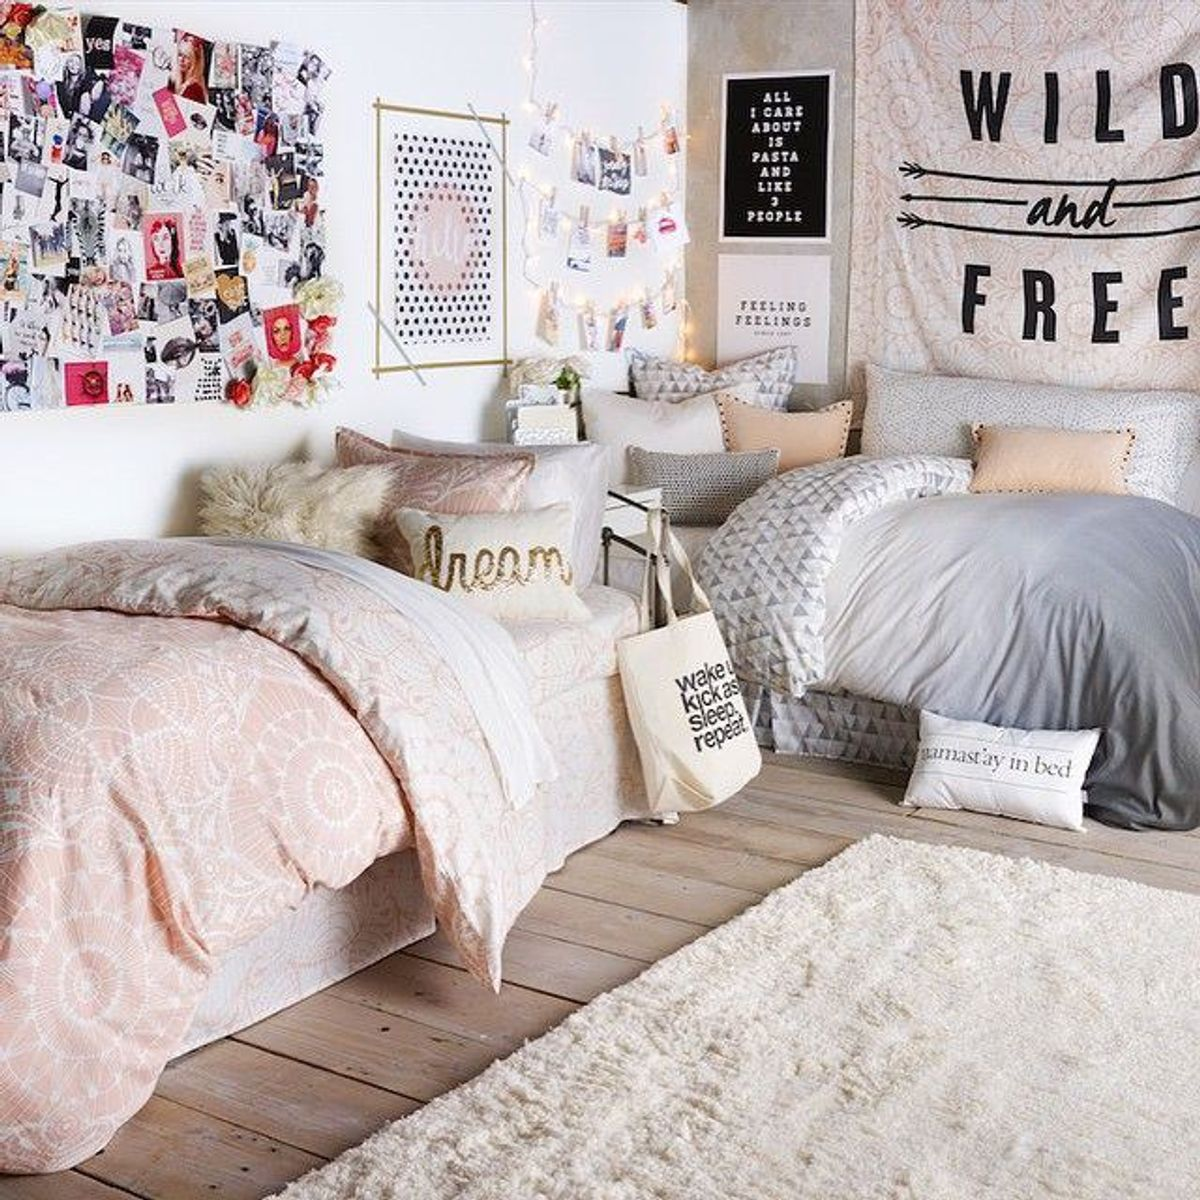 10 DIY Crafts To Spice Up Your Dorm Room